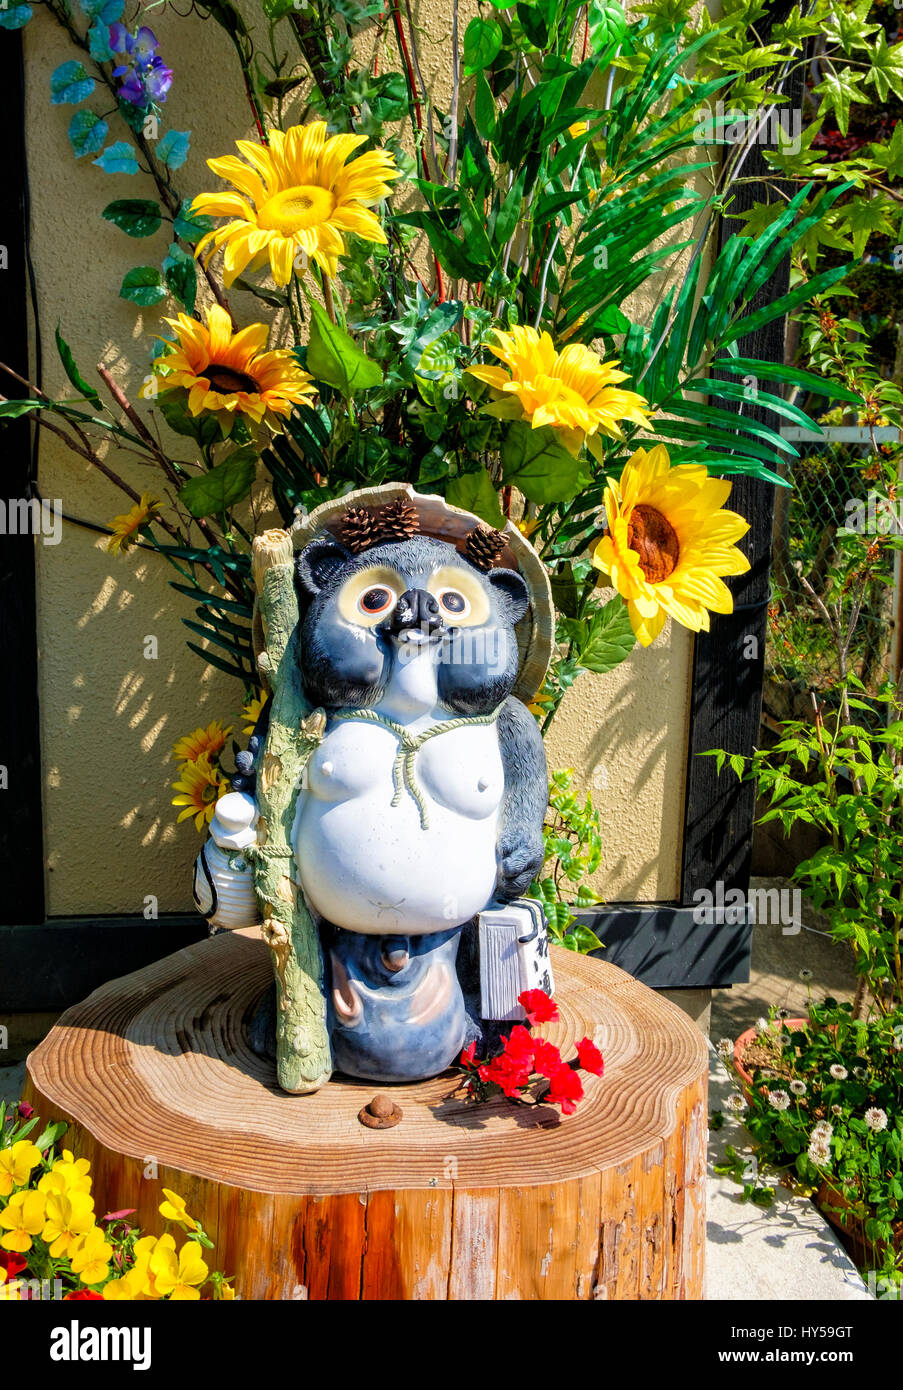 Tanuki Statues Are Common Garden Ornaments In Japan. Tanuki, Or Japanese  Racoon Dogs (unrelated To Racoons Or Dogs) Are Common In Japanese Folklore.